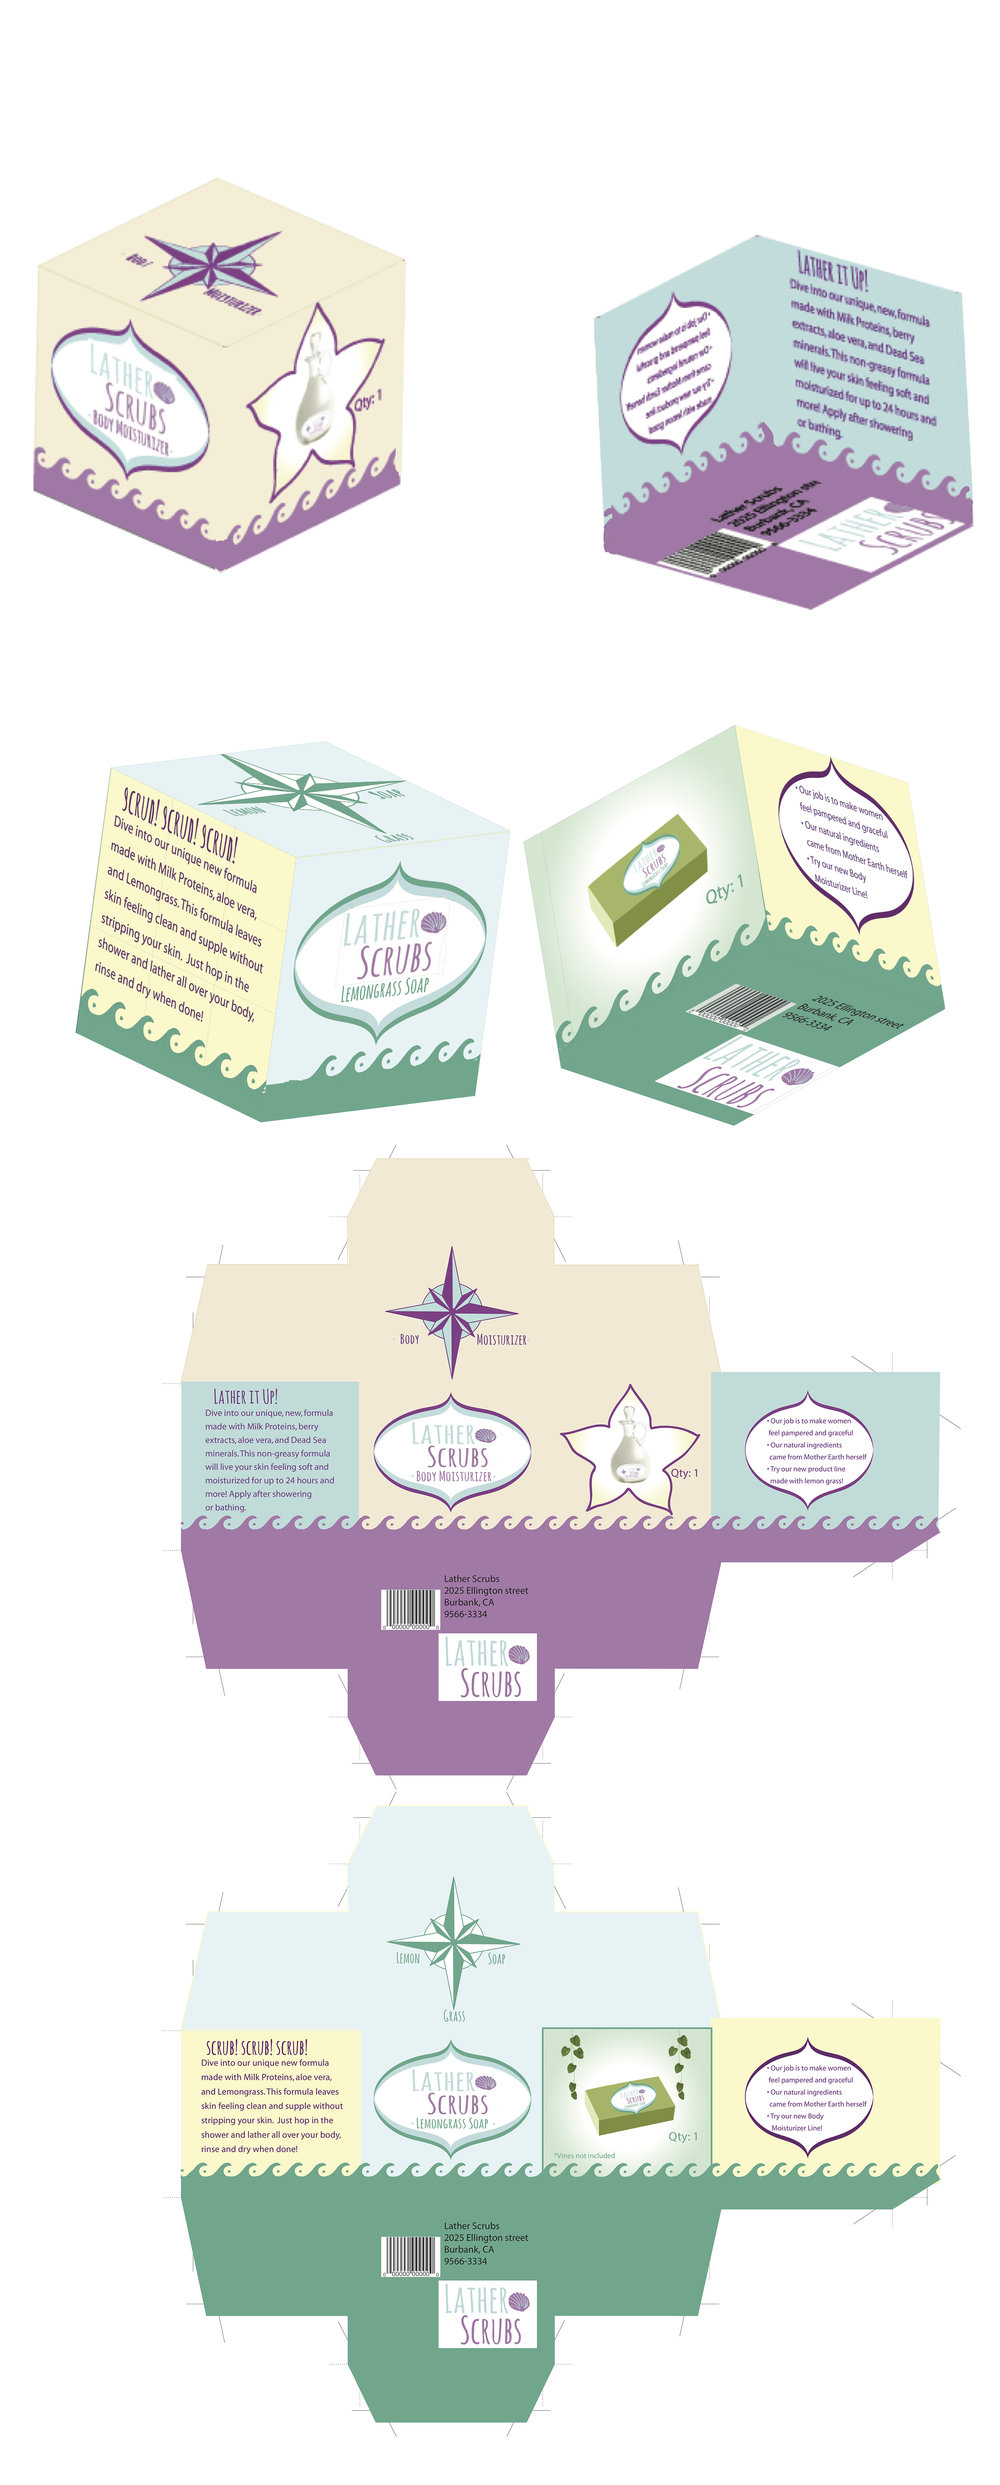 Packaging Design for a ficticious brand named Lather Scrubs. The purple box is for a body moisturizer, and the green is for lemongrass soap.